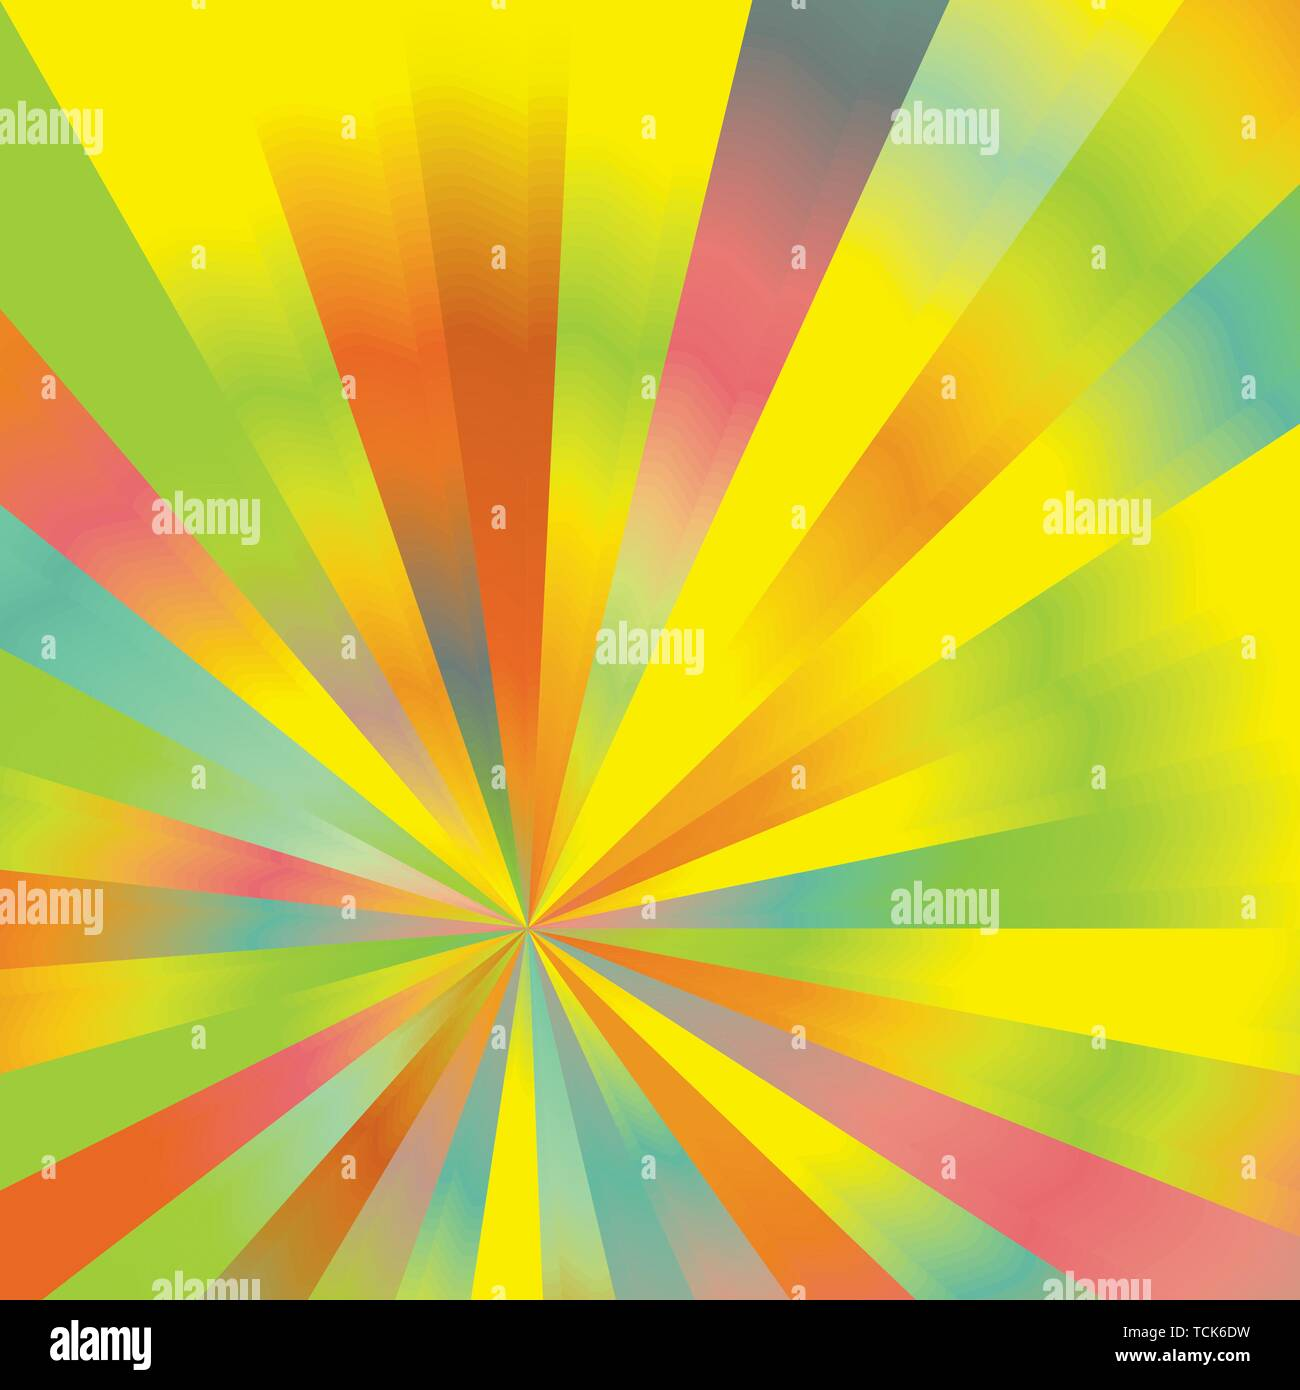 Colorful Abstract Sunburst Rays Background Pattern Texture. Modern Concept In Vector .EPS File Without Raster Effects. - Stock Image